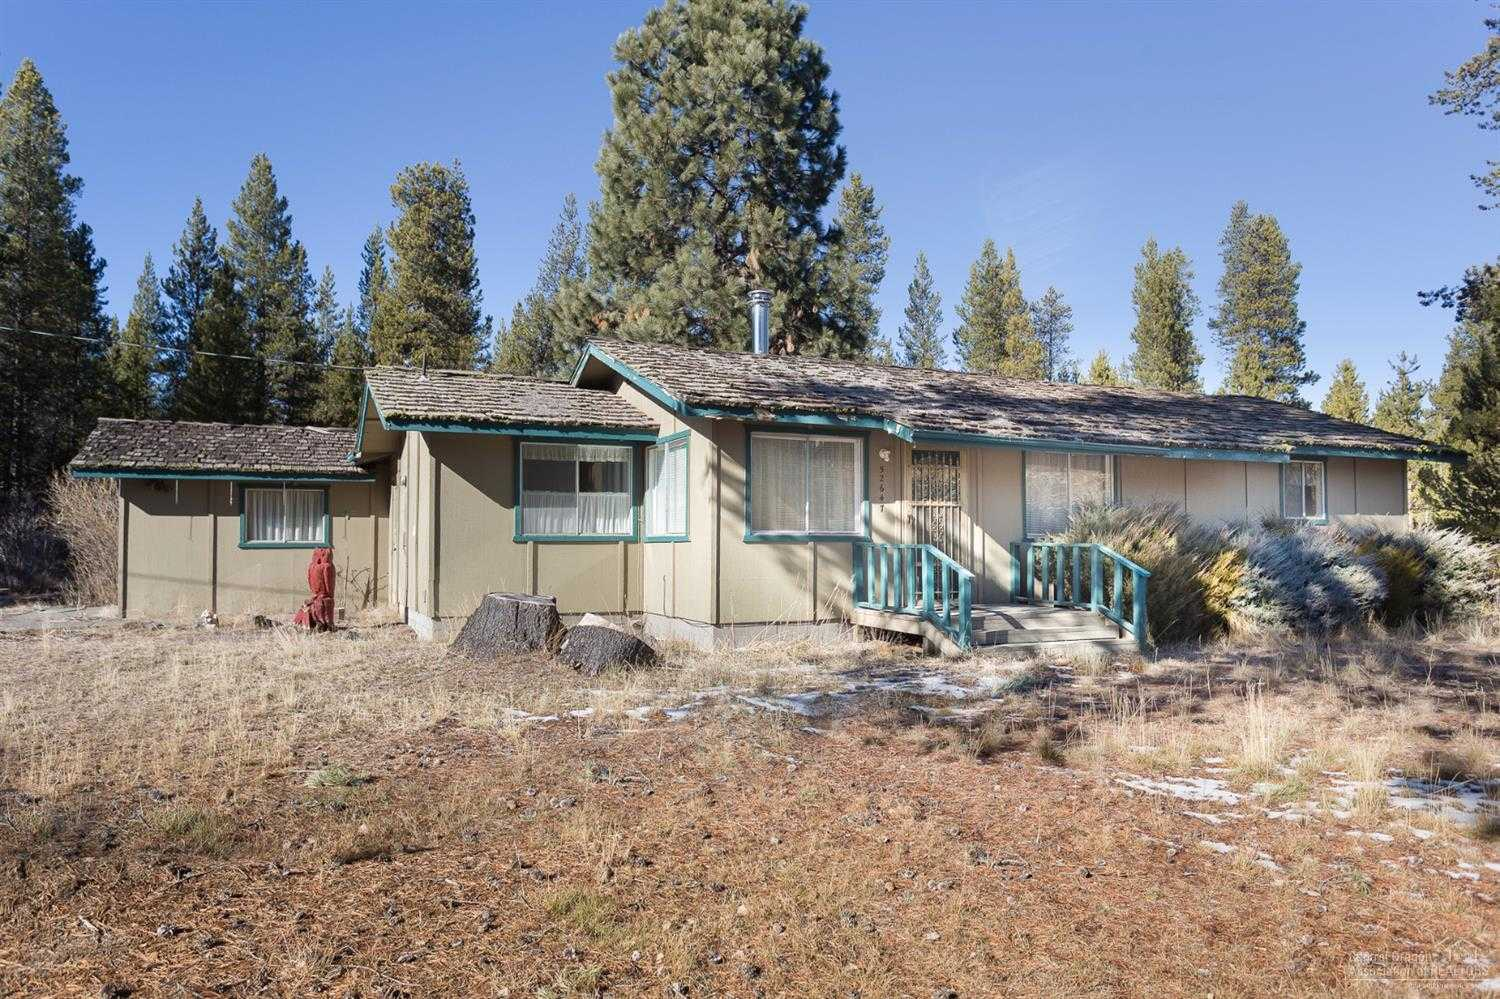 $140,000 - 2Br/1Ba -  for Sale in La Pine